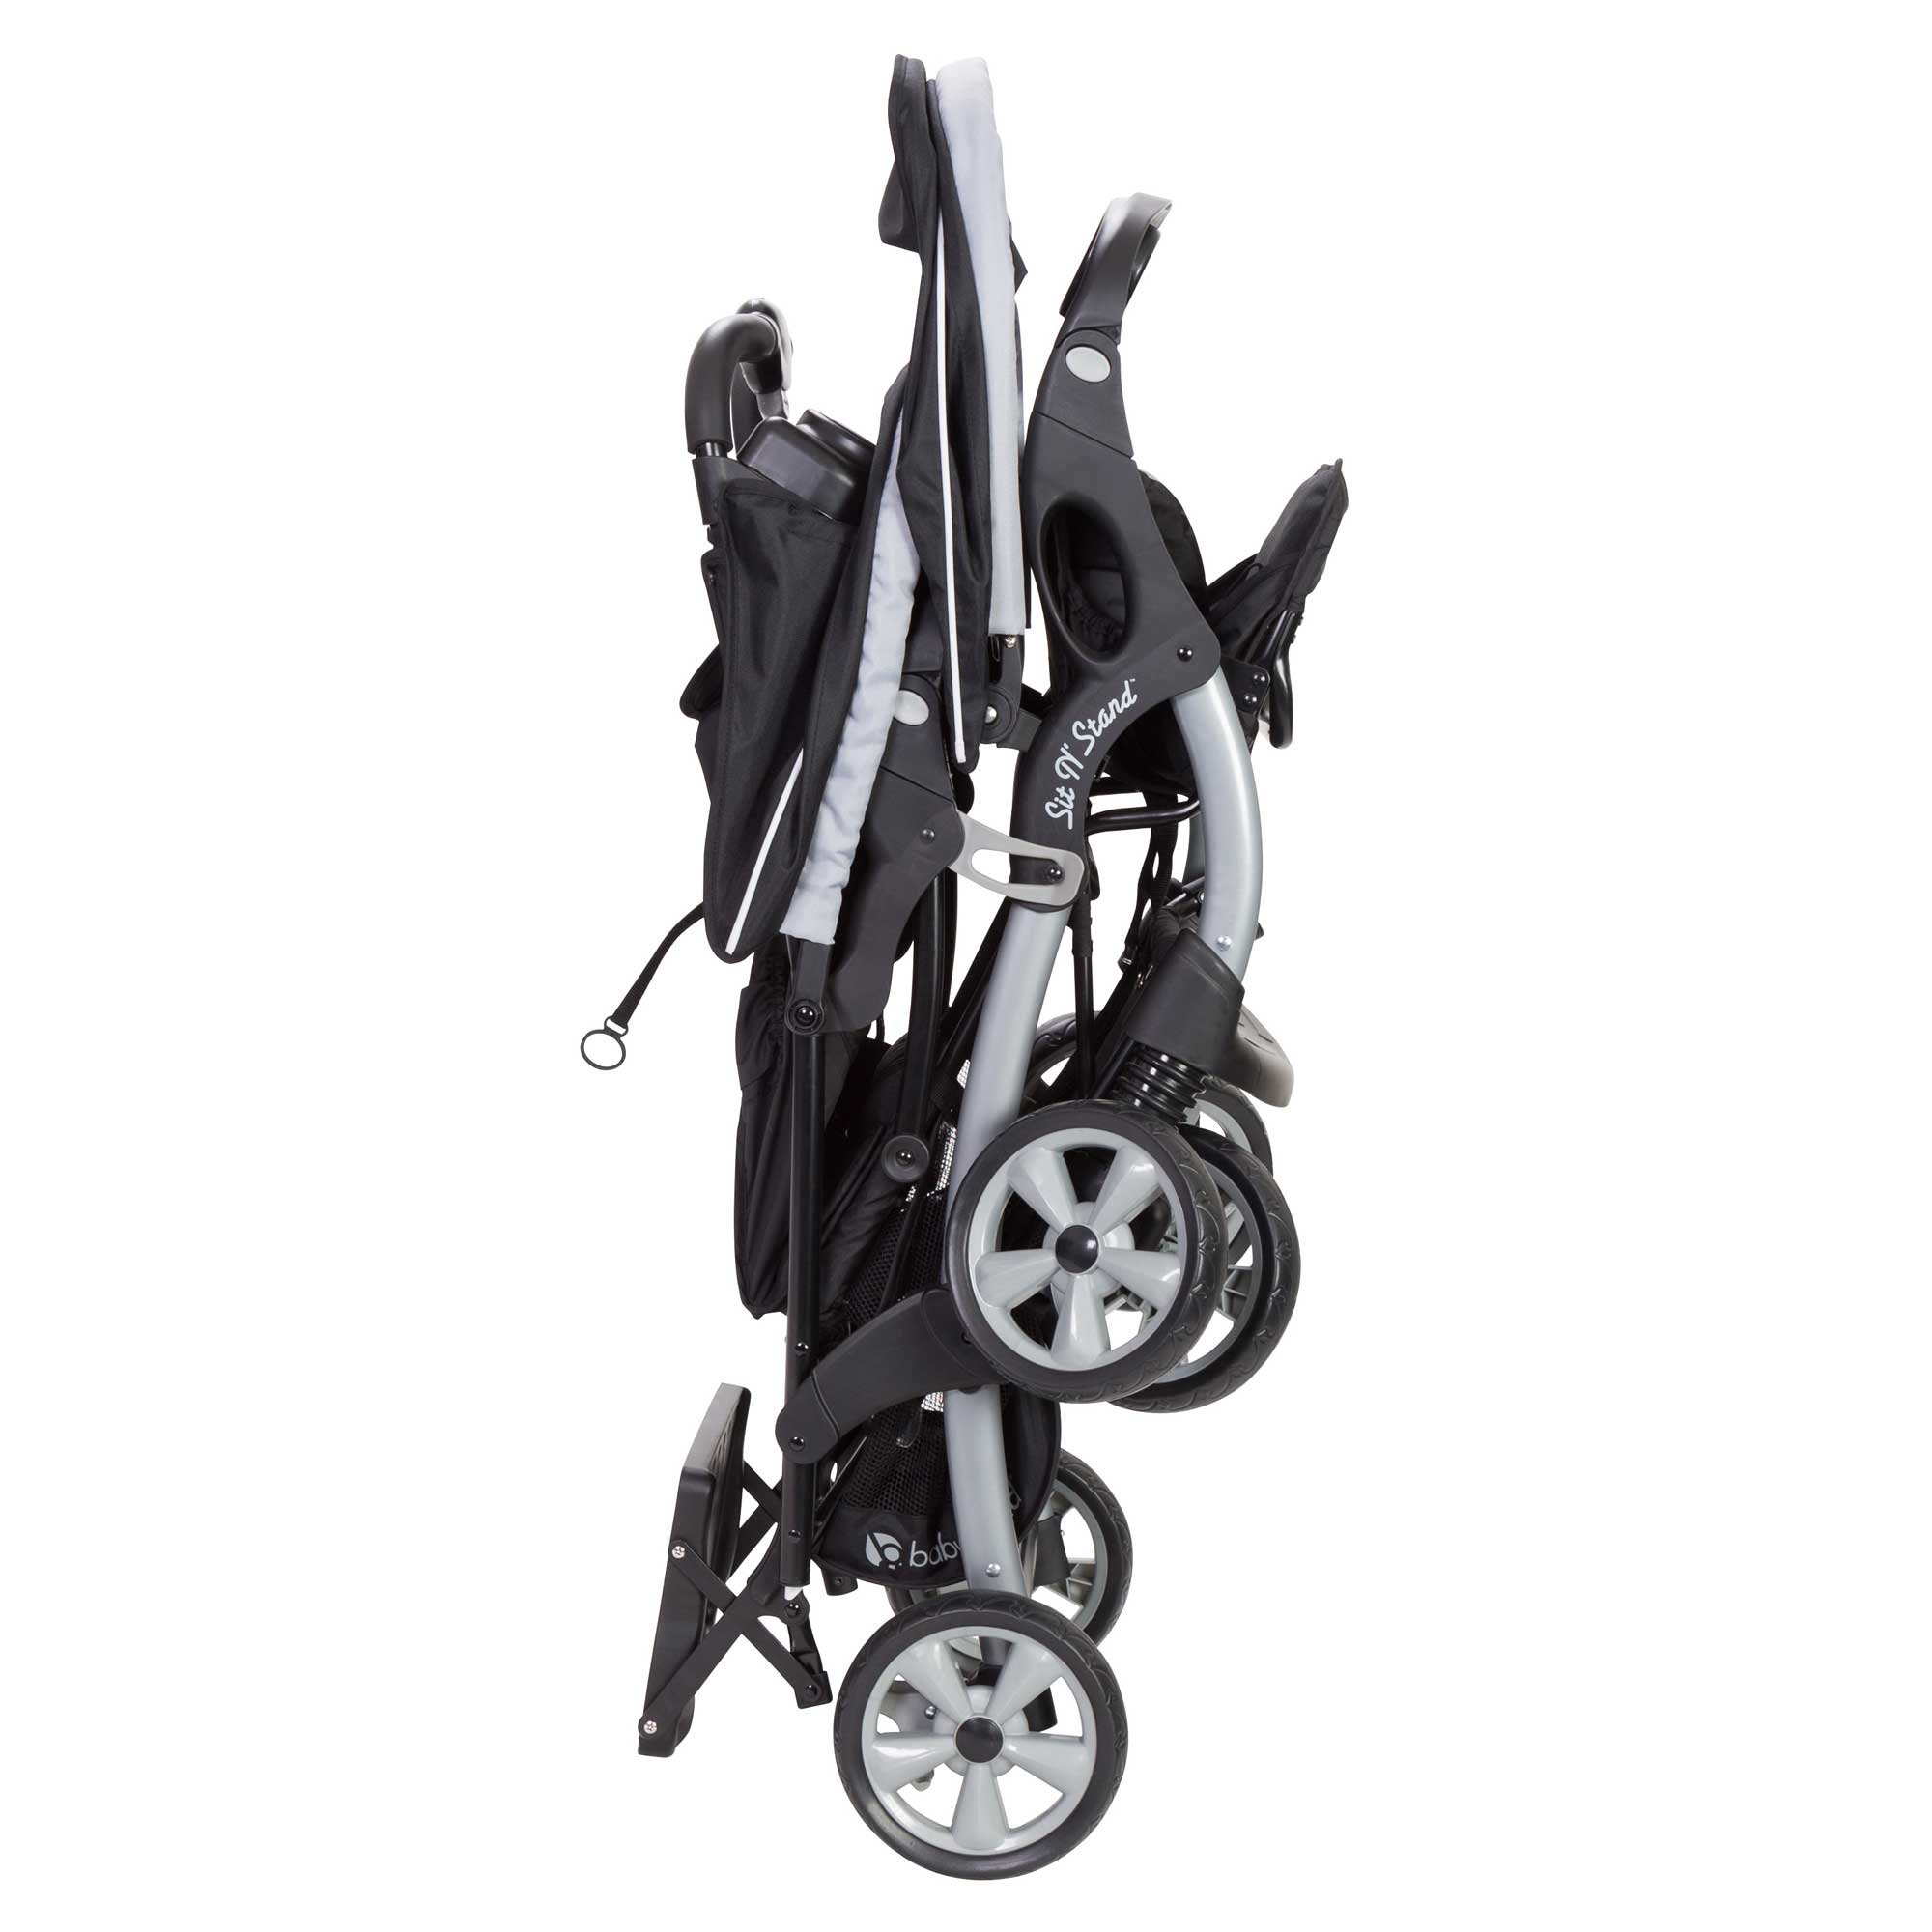 Baby Trend Sit N Stand Tandem Stroller + Infant Car Seat Travel System, Stormy by Baby Trend (Image #7)